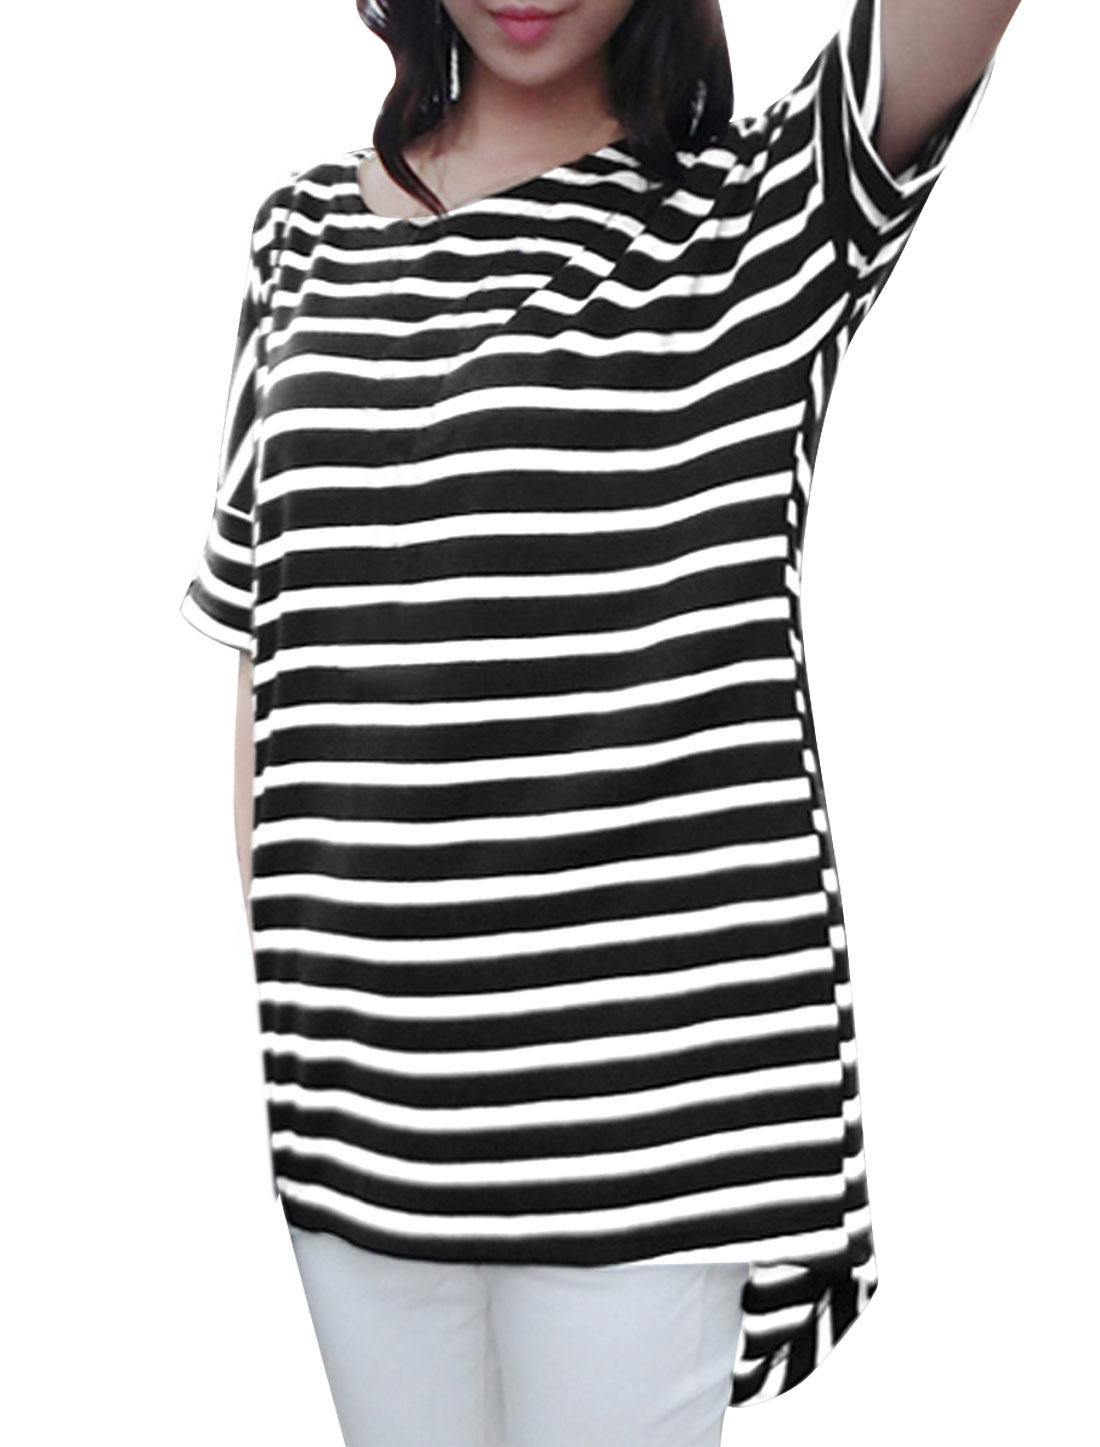 Lady Stripes Pattern Round Neck Batwing Elbow Sleeve Tunic T-Shirt Black XS